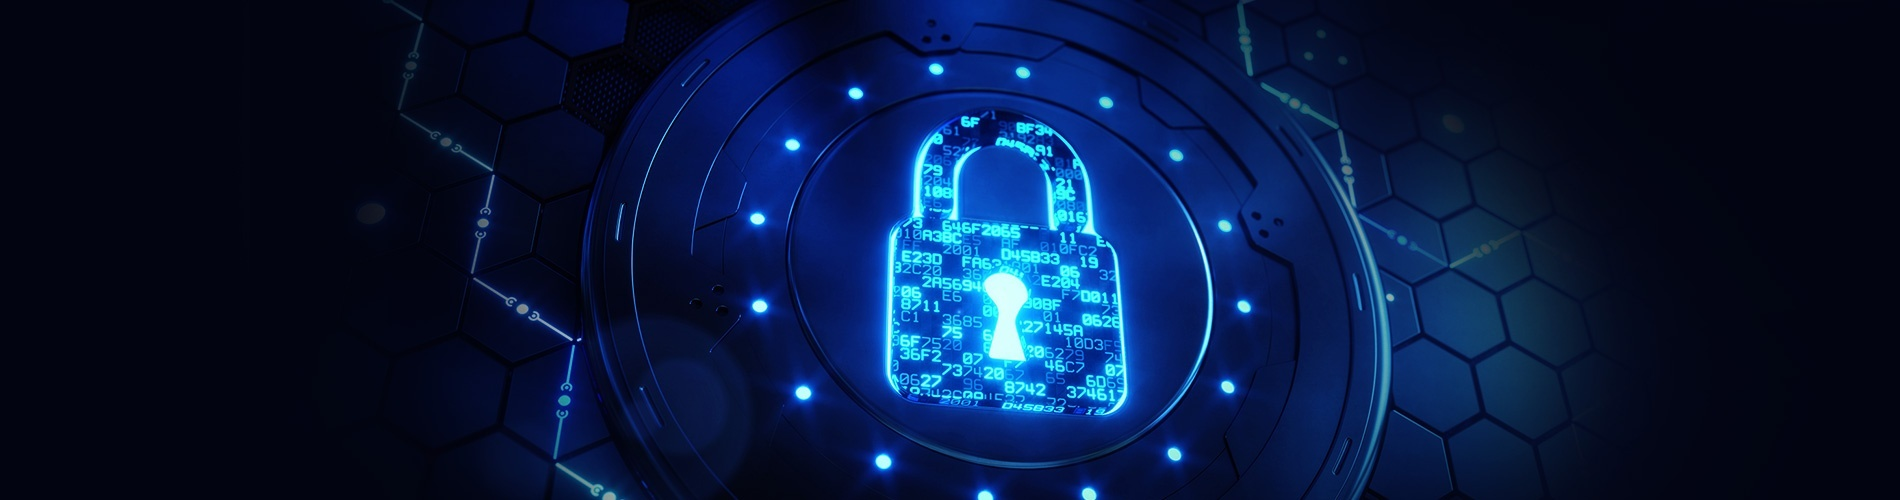 Our-Top-10-Cyber-Security-Predictions-for-2017.jpg